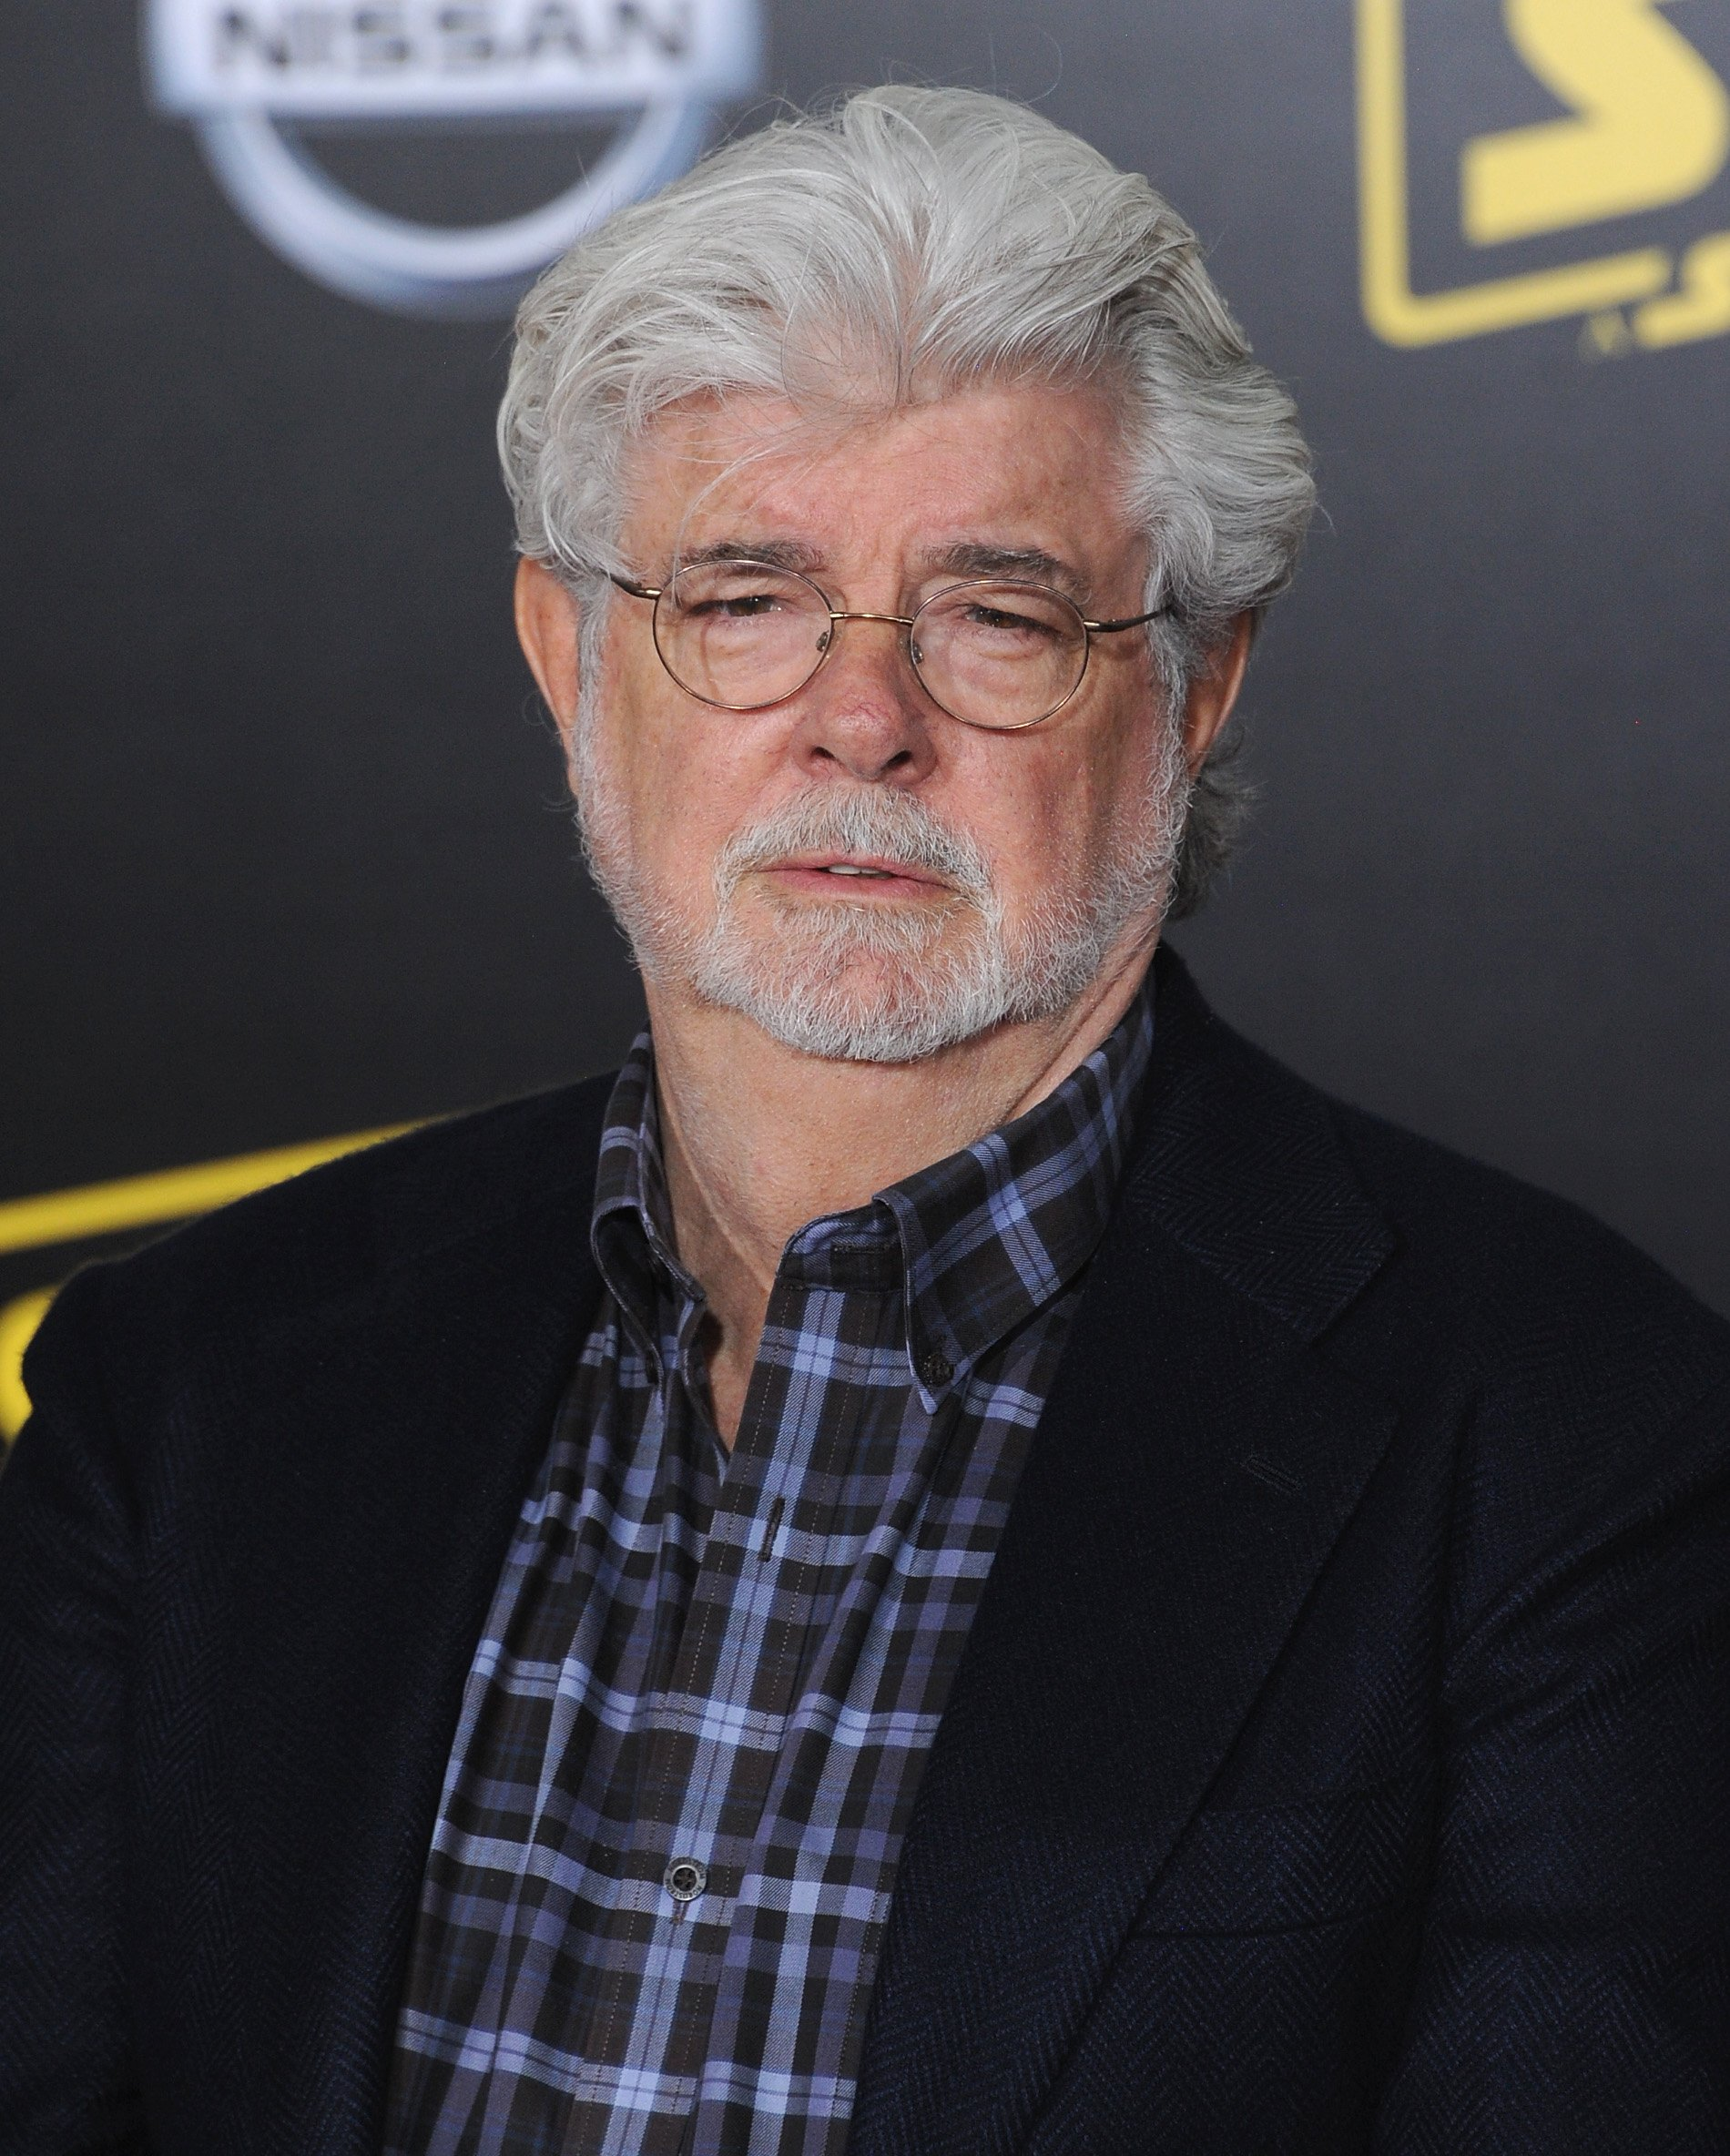 """George Lucas attends the premiere of """"Solo: A Star Wars Story"""" in Los Angeles, California on May 10, 2018 